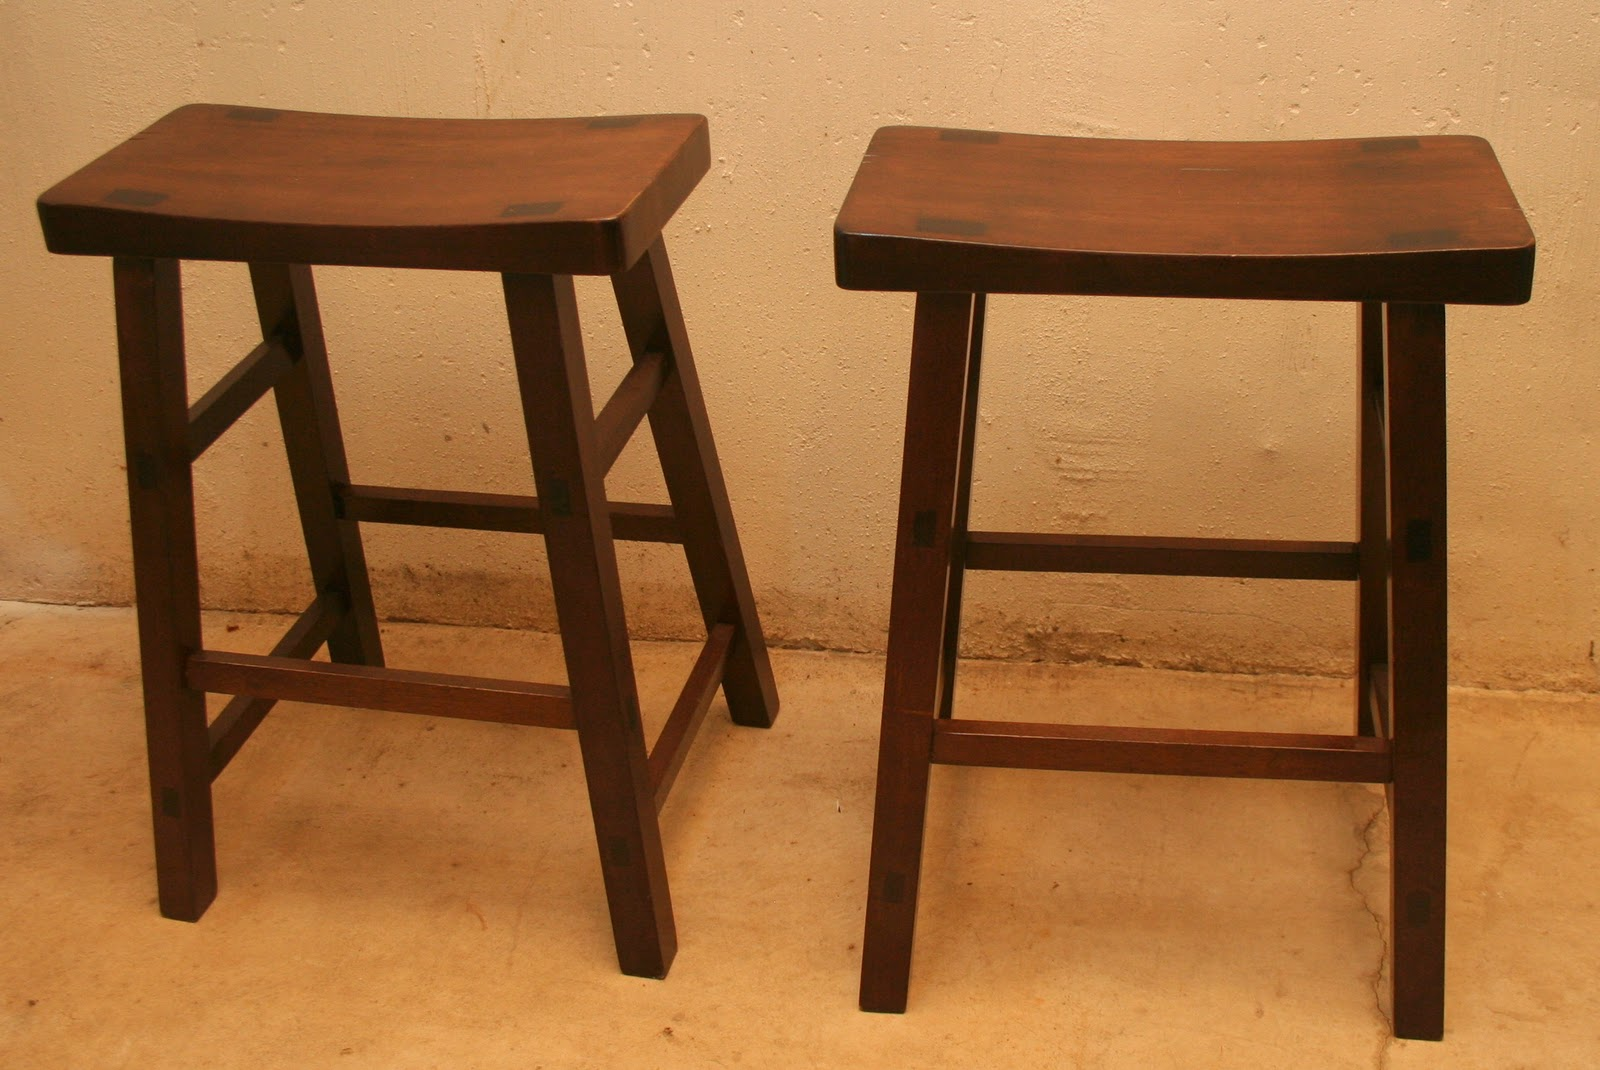 Bar Stools Each Purchased from Pier e